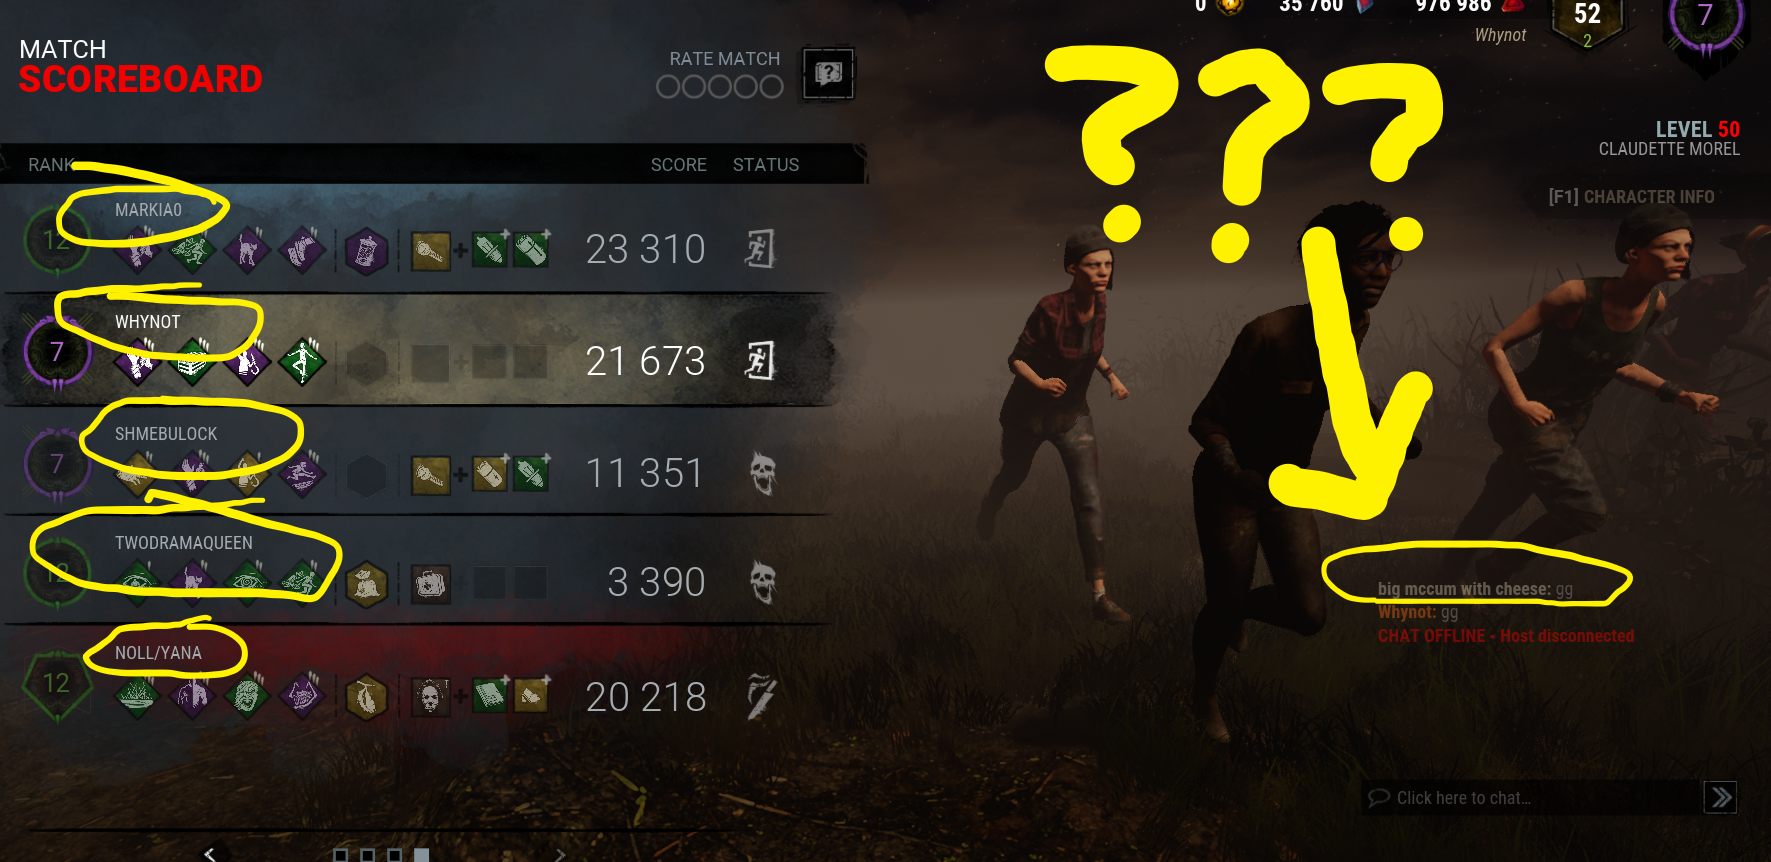 Phantom player? Spoofing? Can you matchmake as spectator